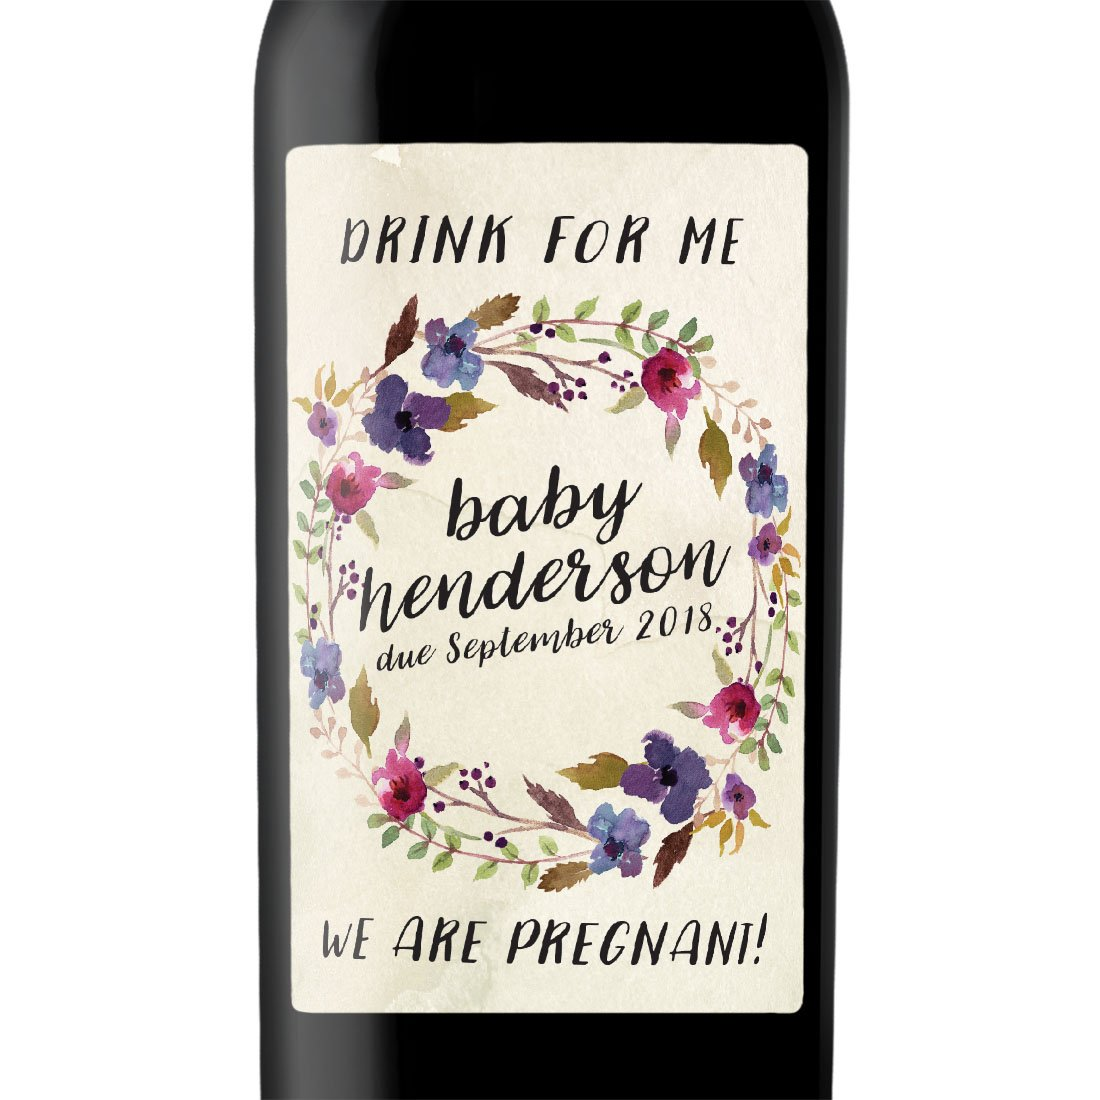 ''Drink For Me'' Custom Wine Label Bottle Stickers for Pregnancy Announcement and Baby Shower Party - Gifts for Guests, Event Invitation - Unique Specialized Personalized Bespoke Set of 4